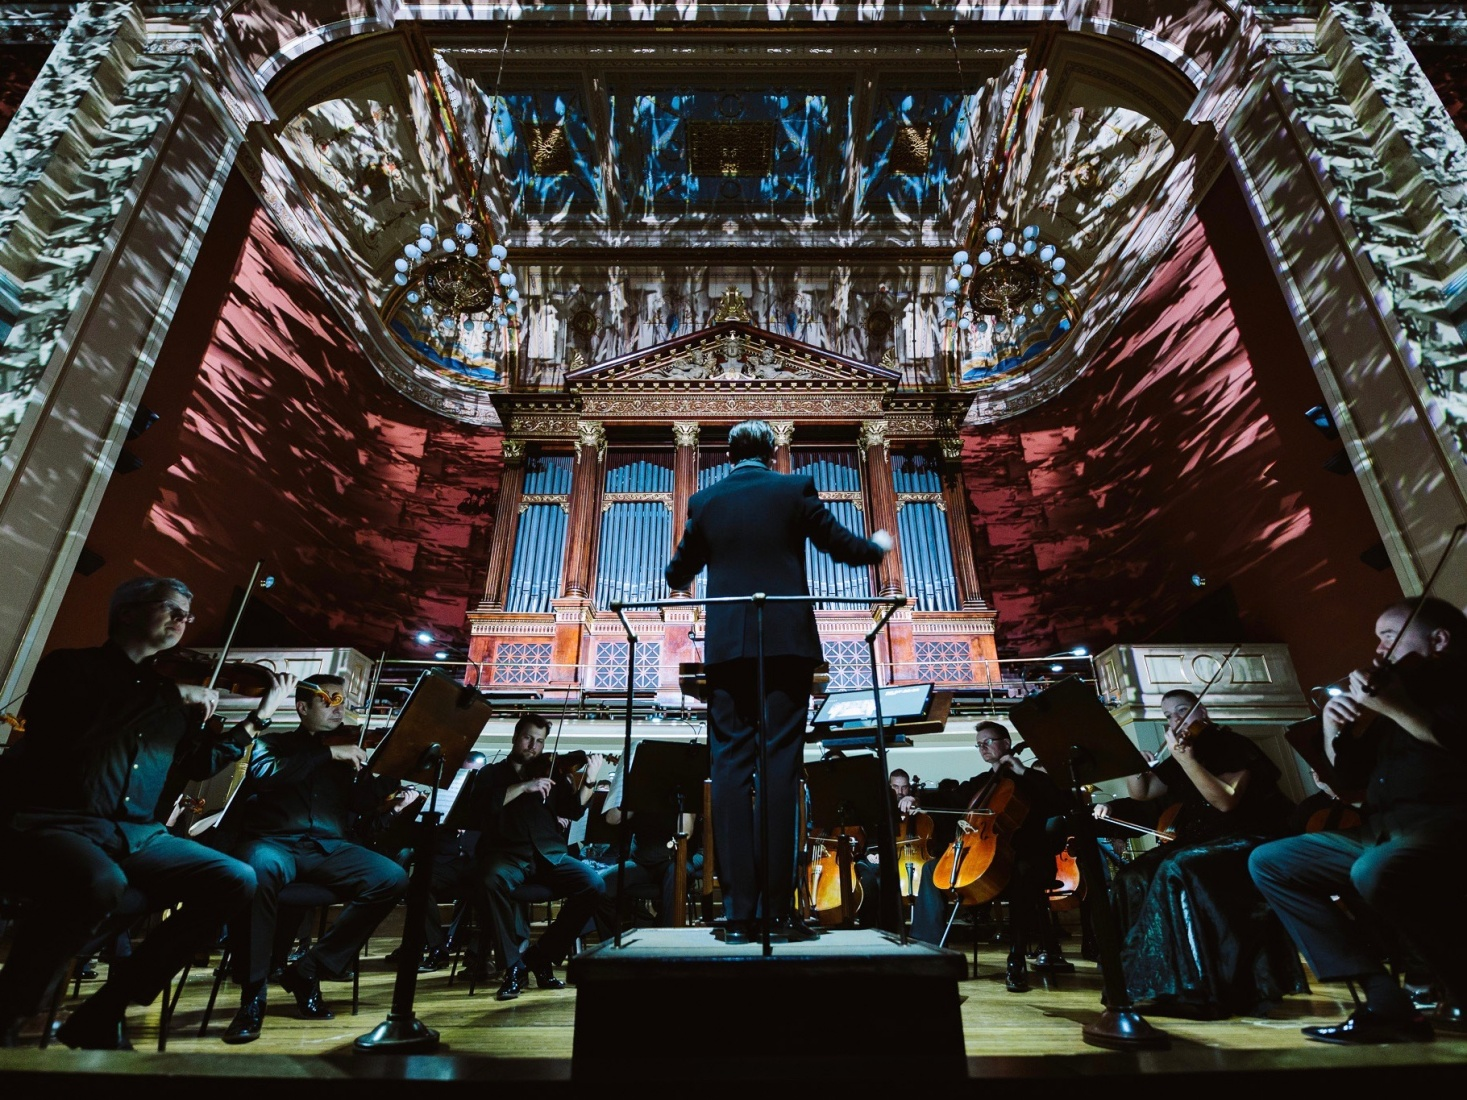 The Prague Radio Symphony Orchestra and conductor Jan Kučera at the Rudolfinum's Dvořák Hall, in Prague, Czech Republic. Photo credit: Dušan Vondra.